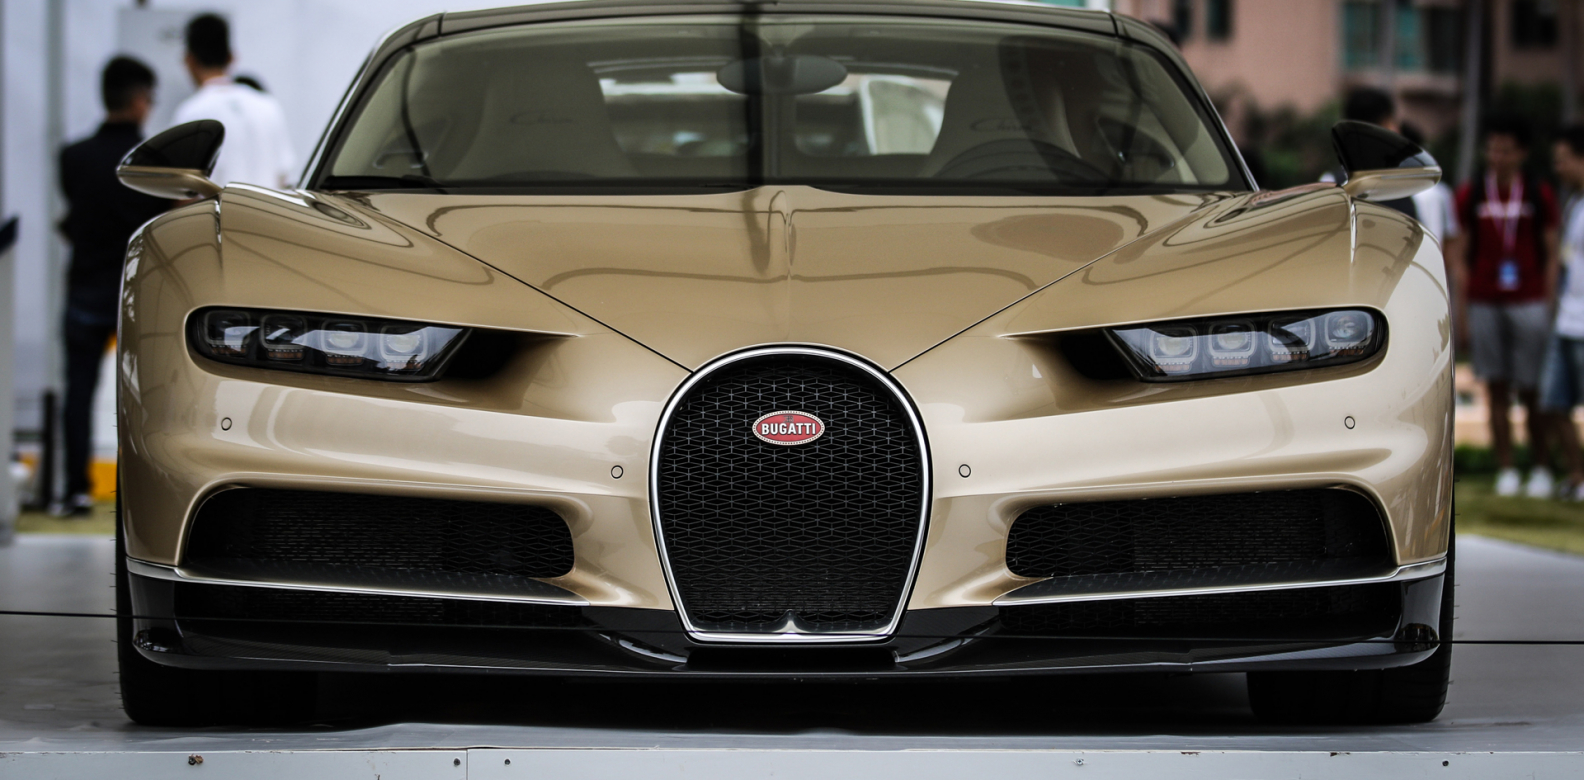 5 Things To Know About The New Bugatti Chiron | Hong Kong Tatler